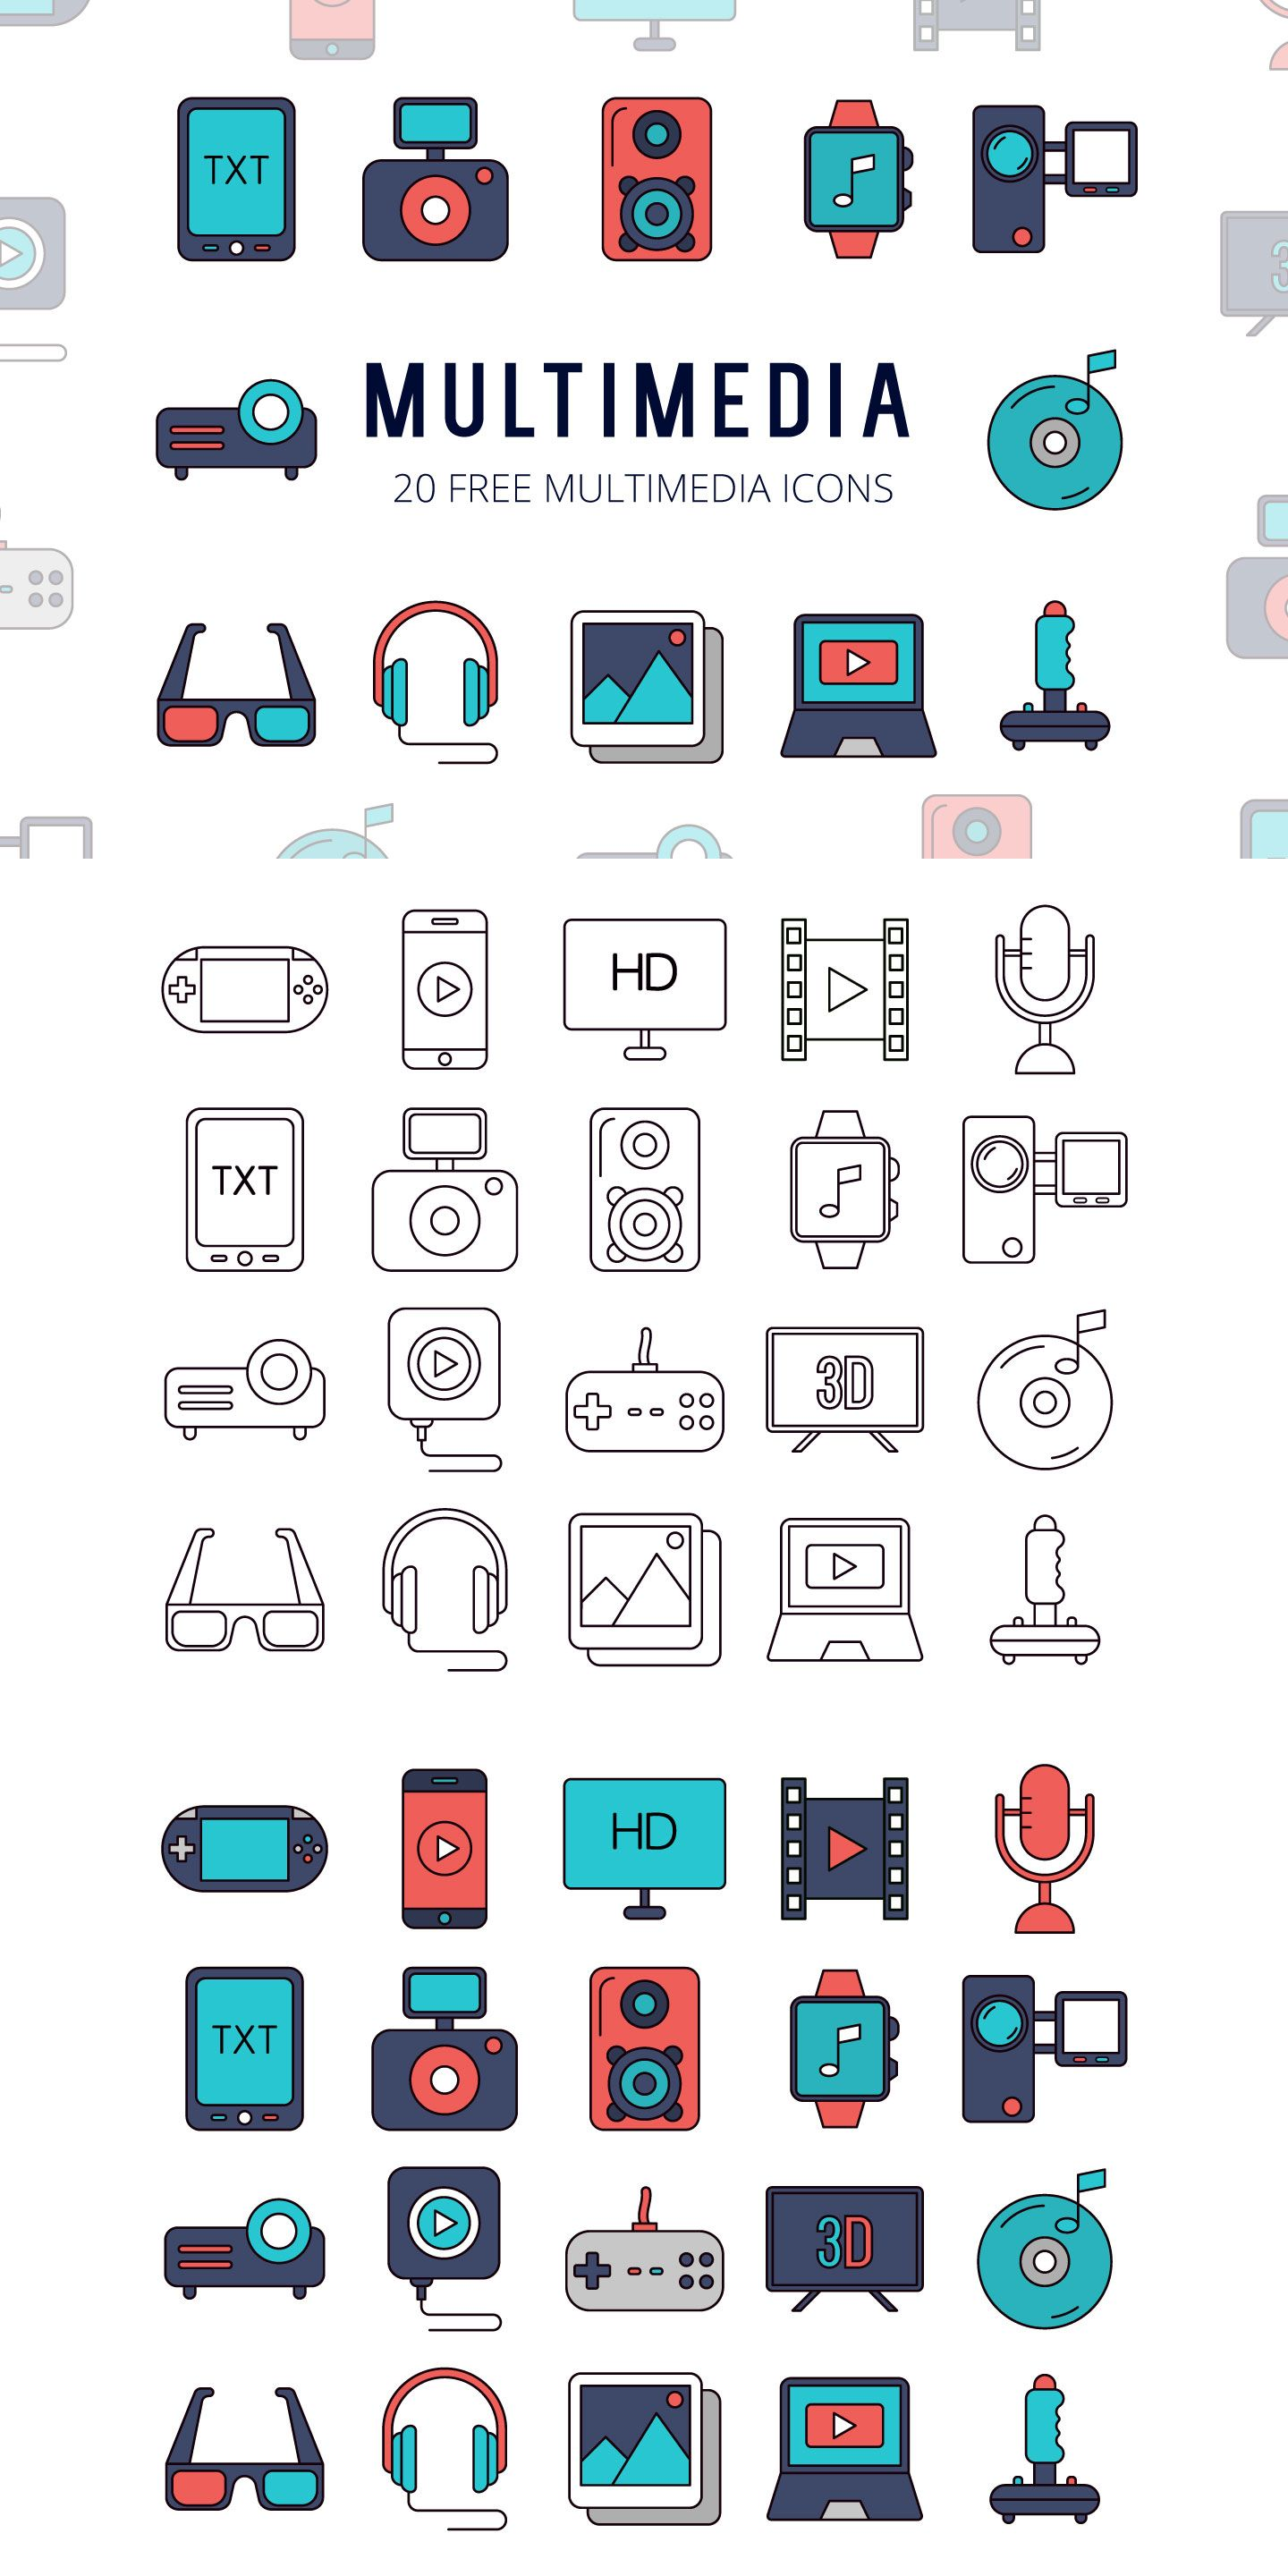 We publish the Multimedia Vector Free Icon Set